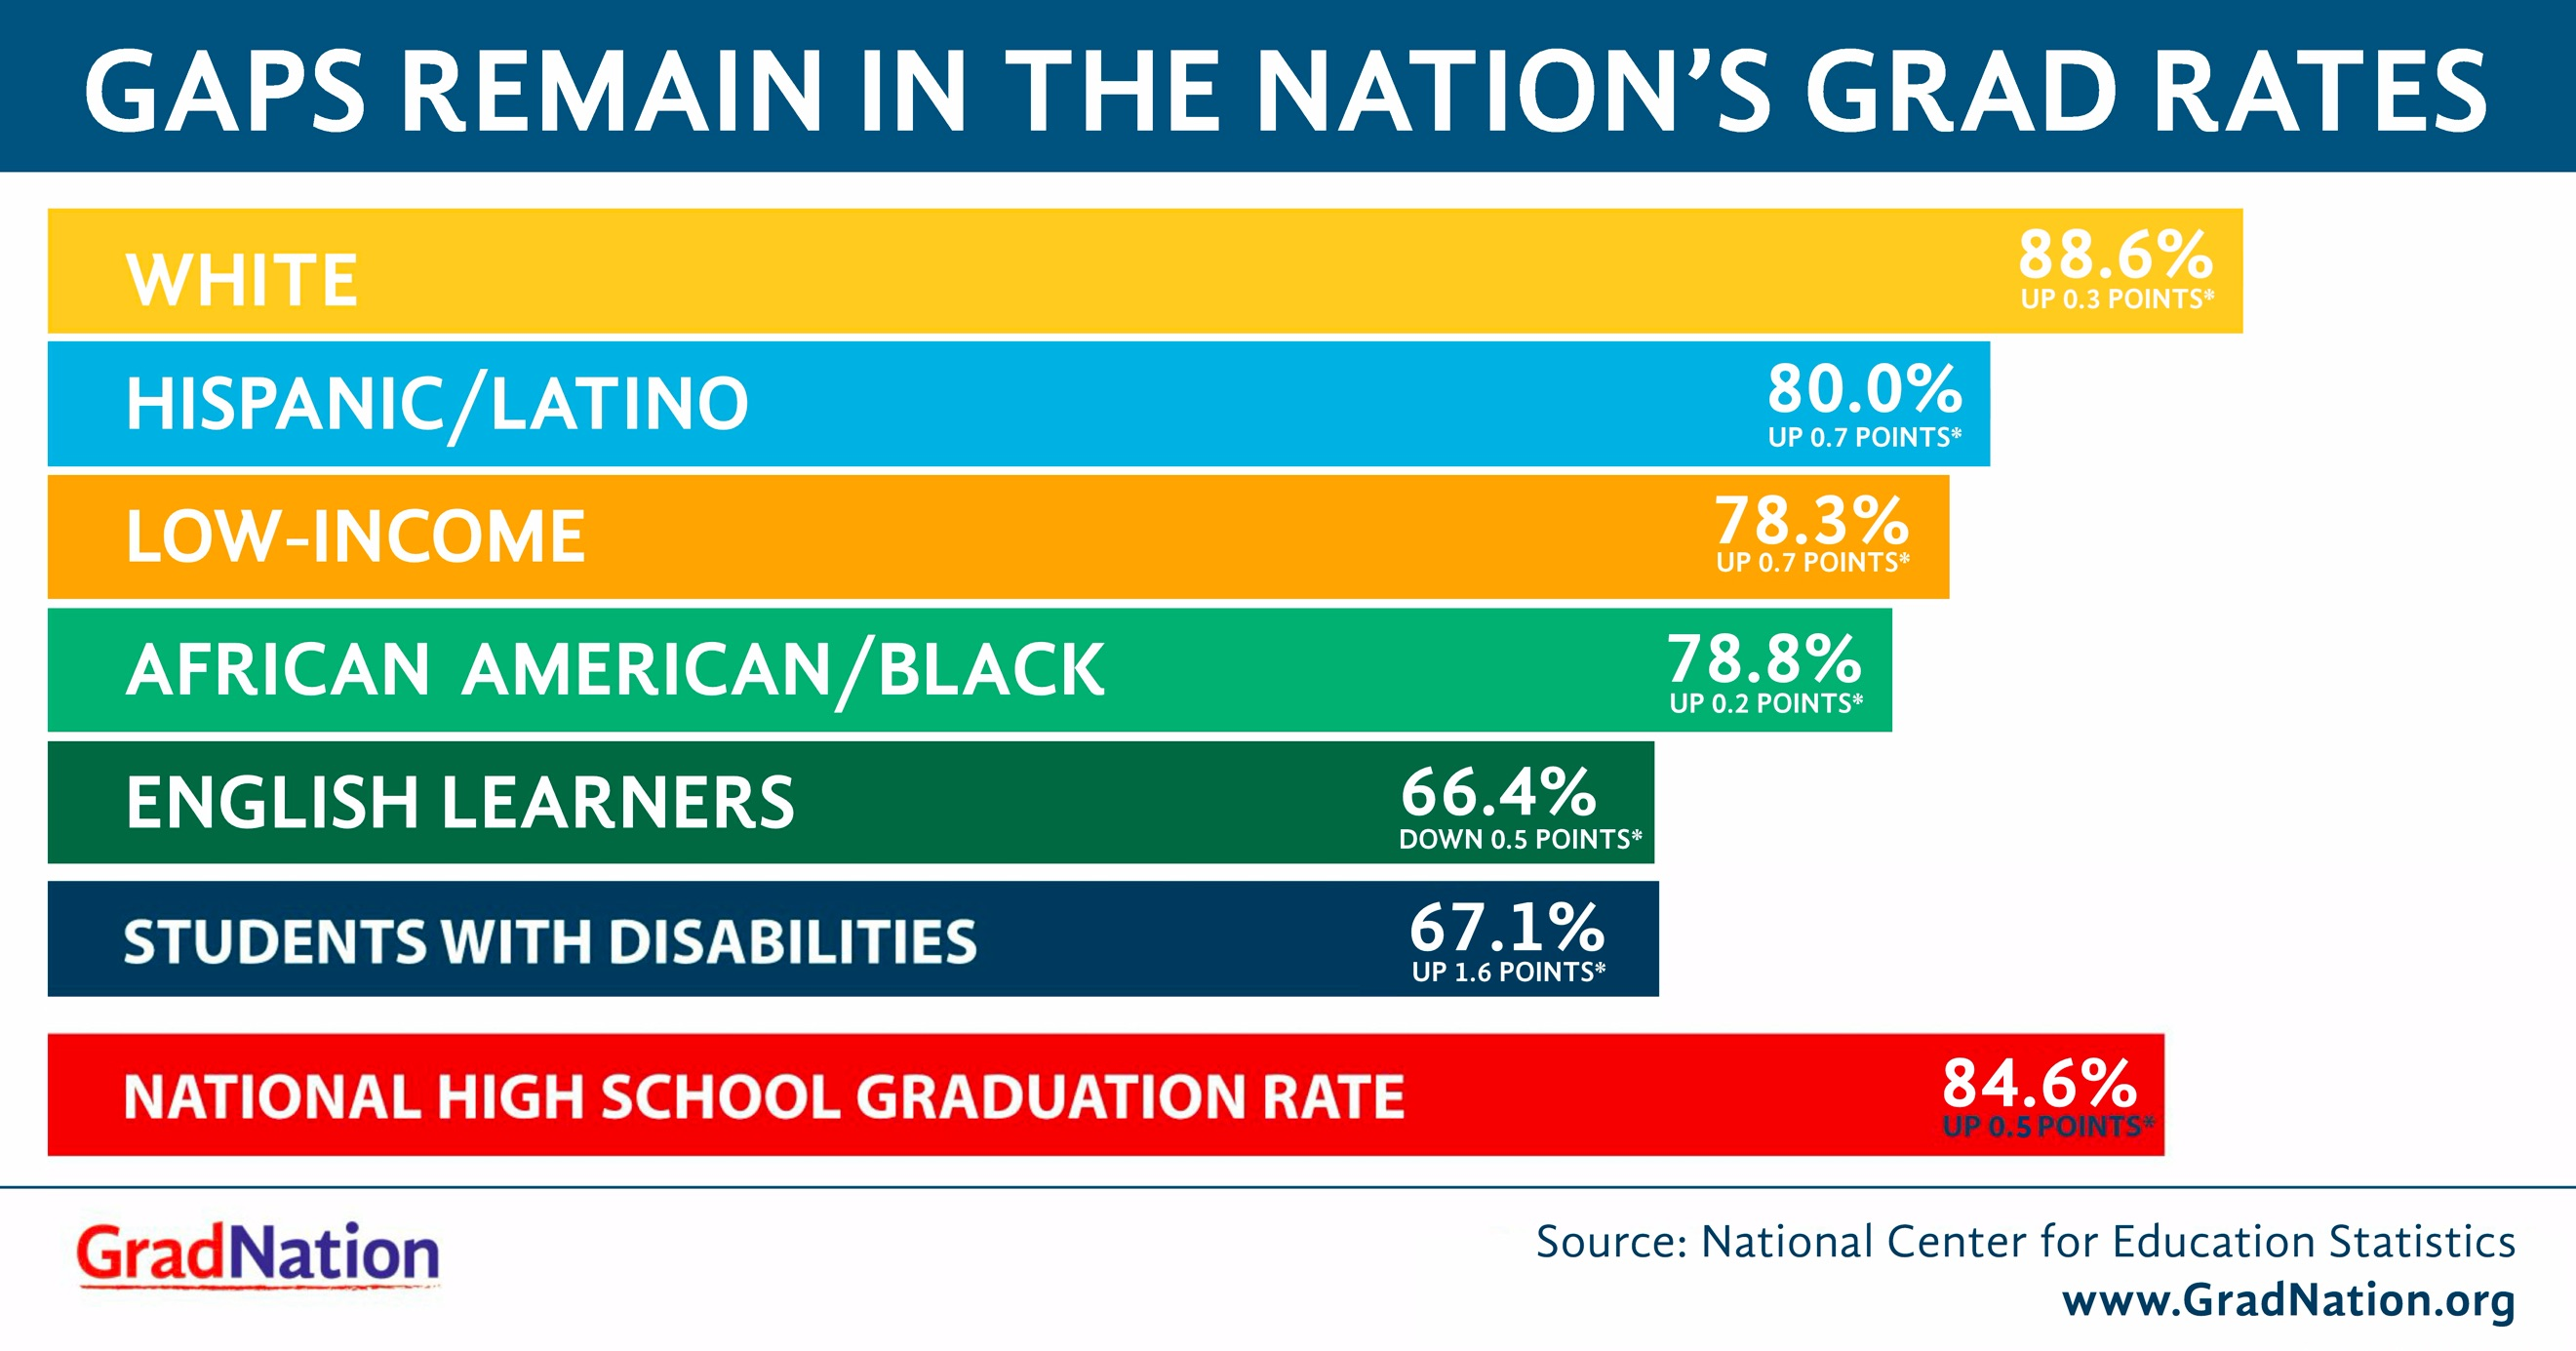 Chart describing the gaps in the nations grad rates by cohort.